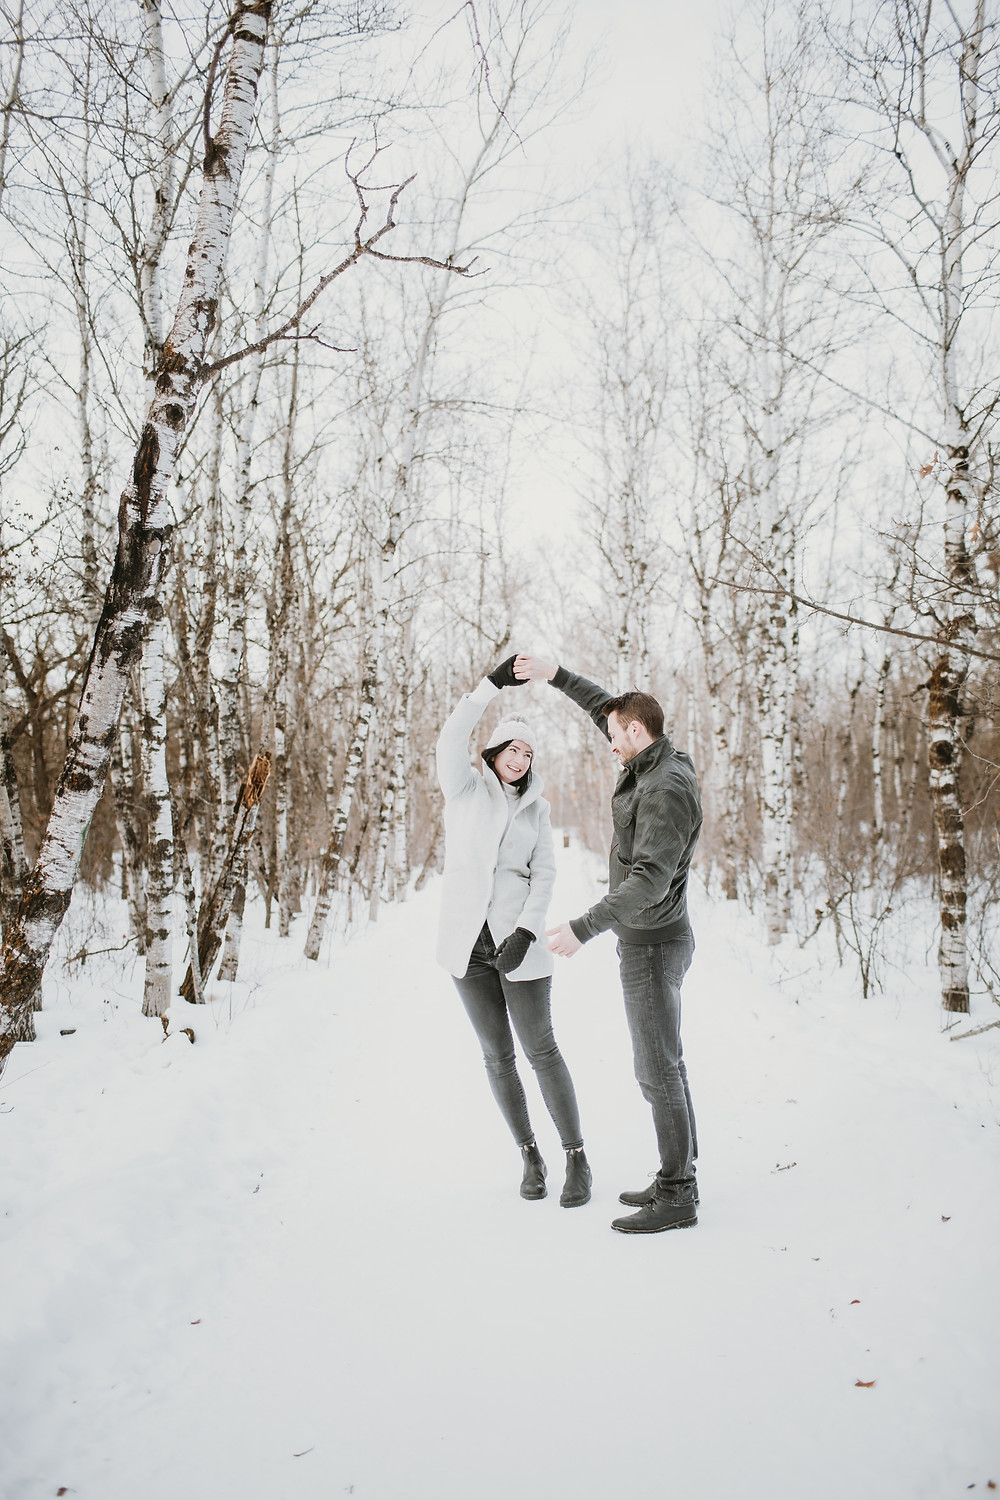 Couple dances in snowy forest.